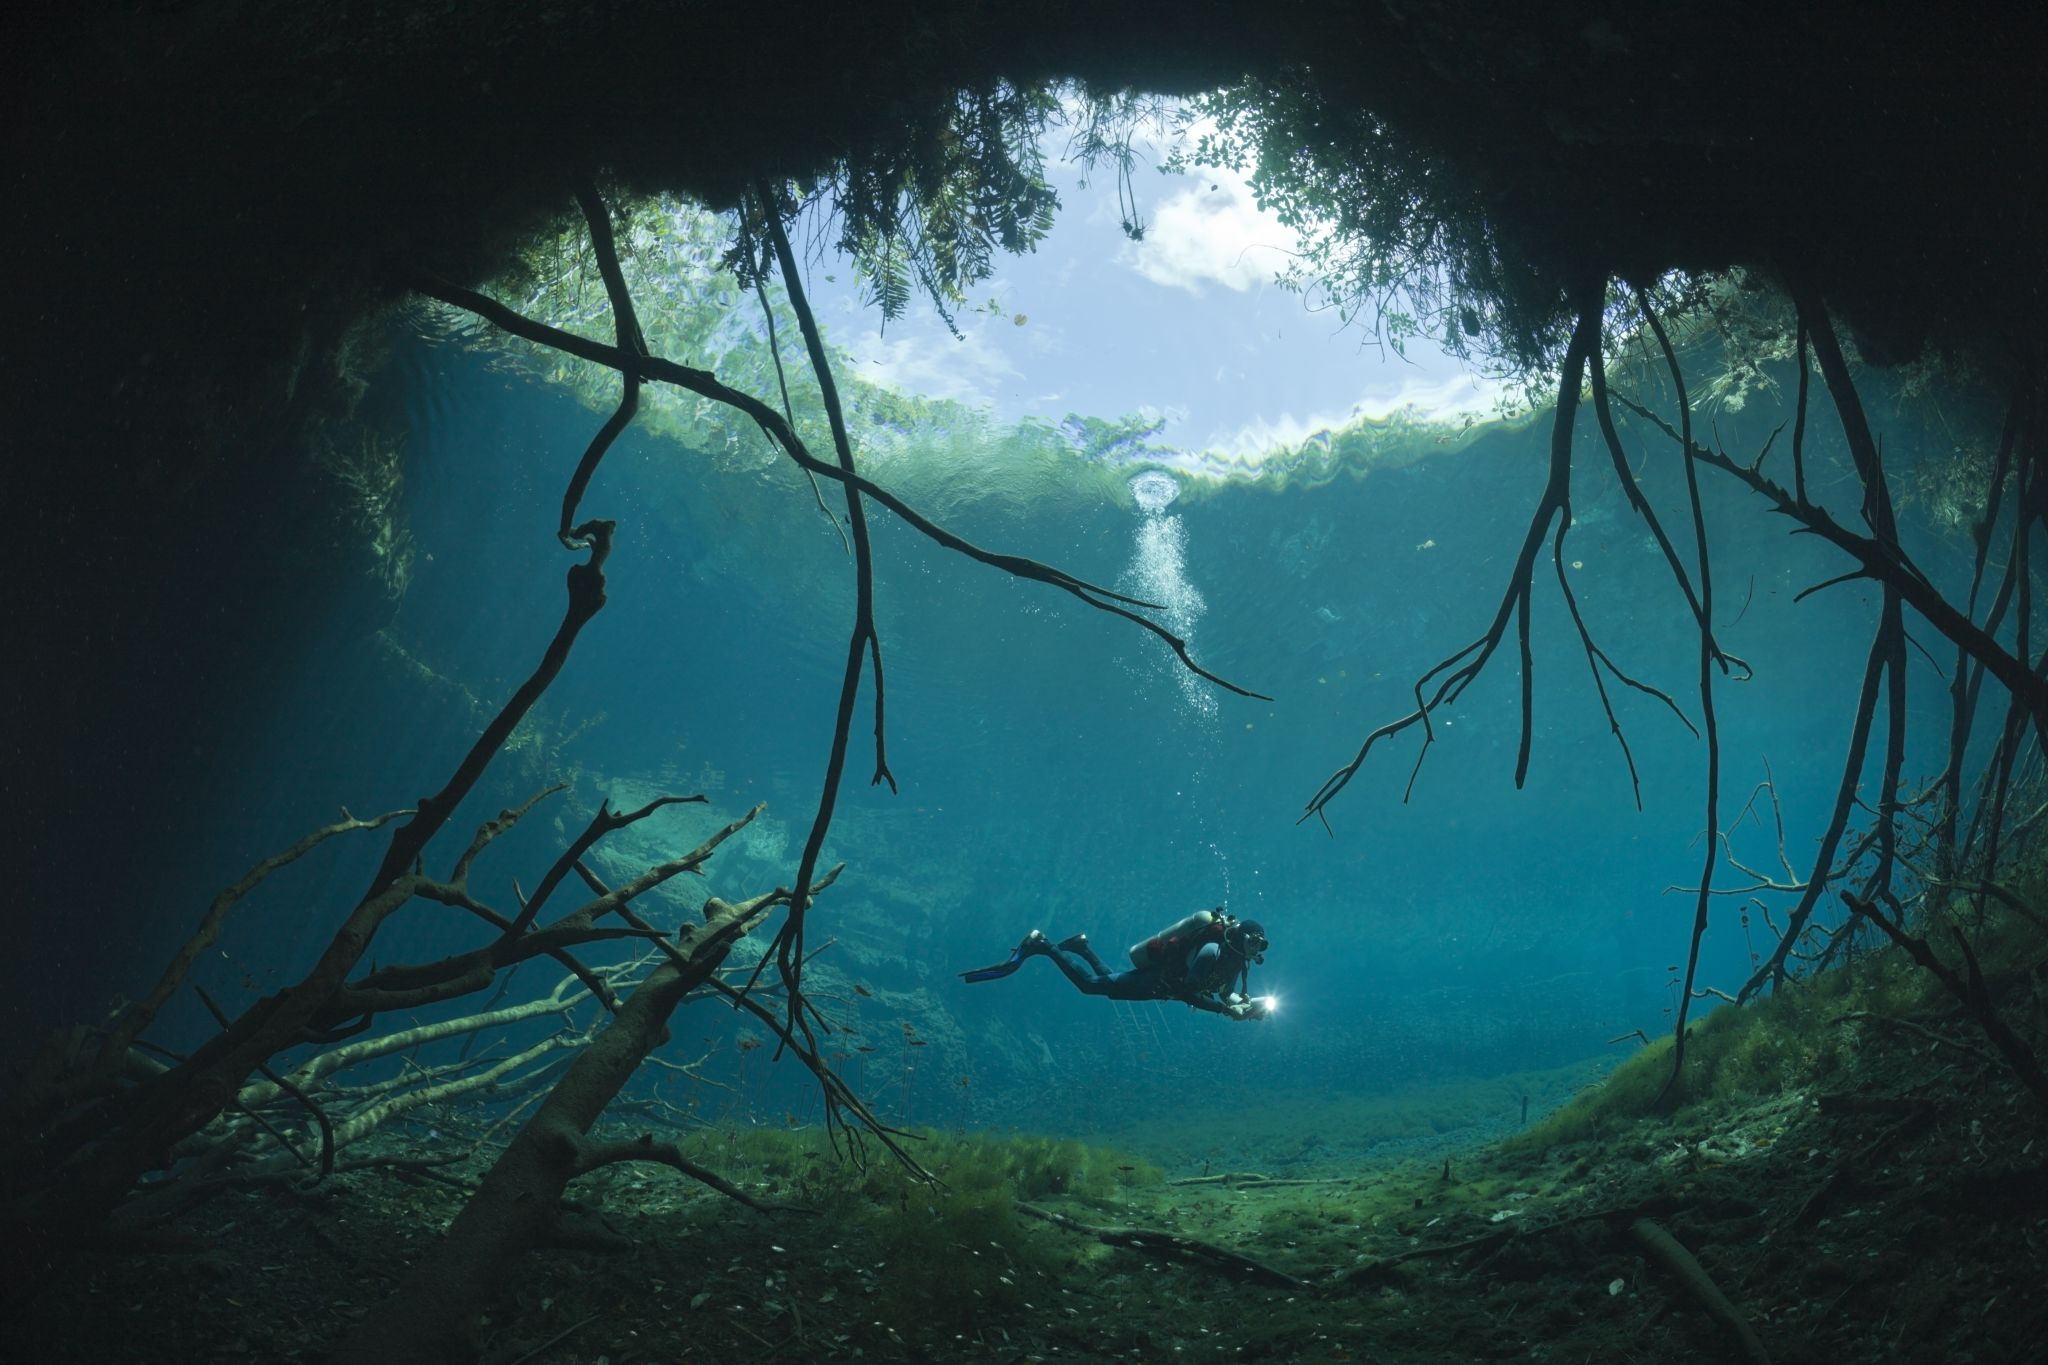 The World S Largest Underwater Cave Has Been Discovered And May Hold Ancient Mayan Secrets